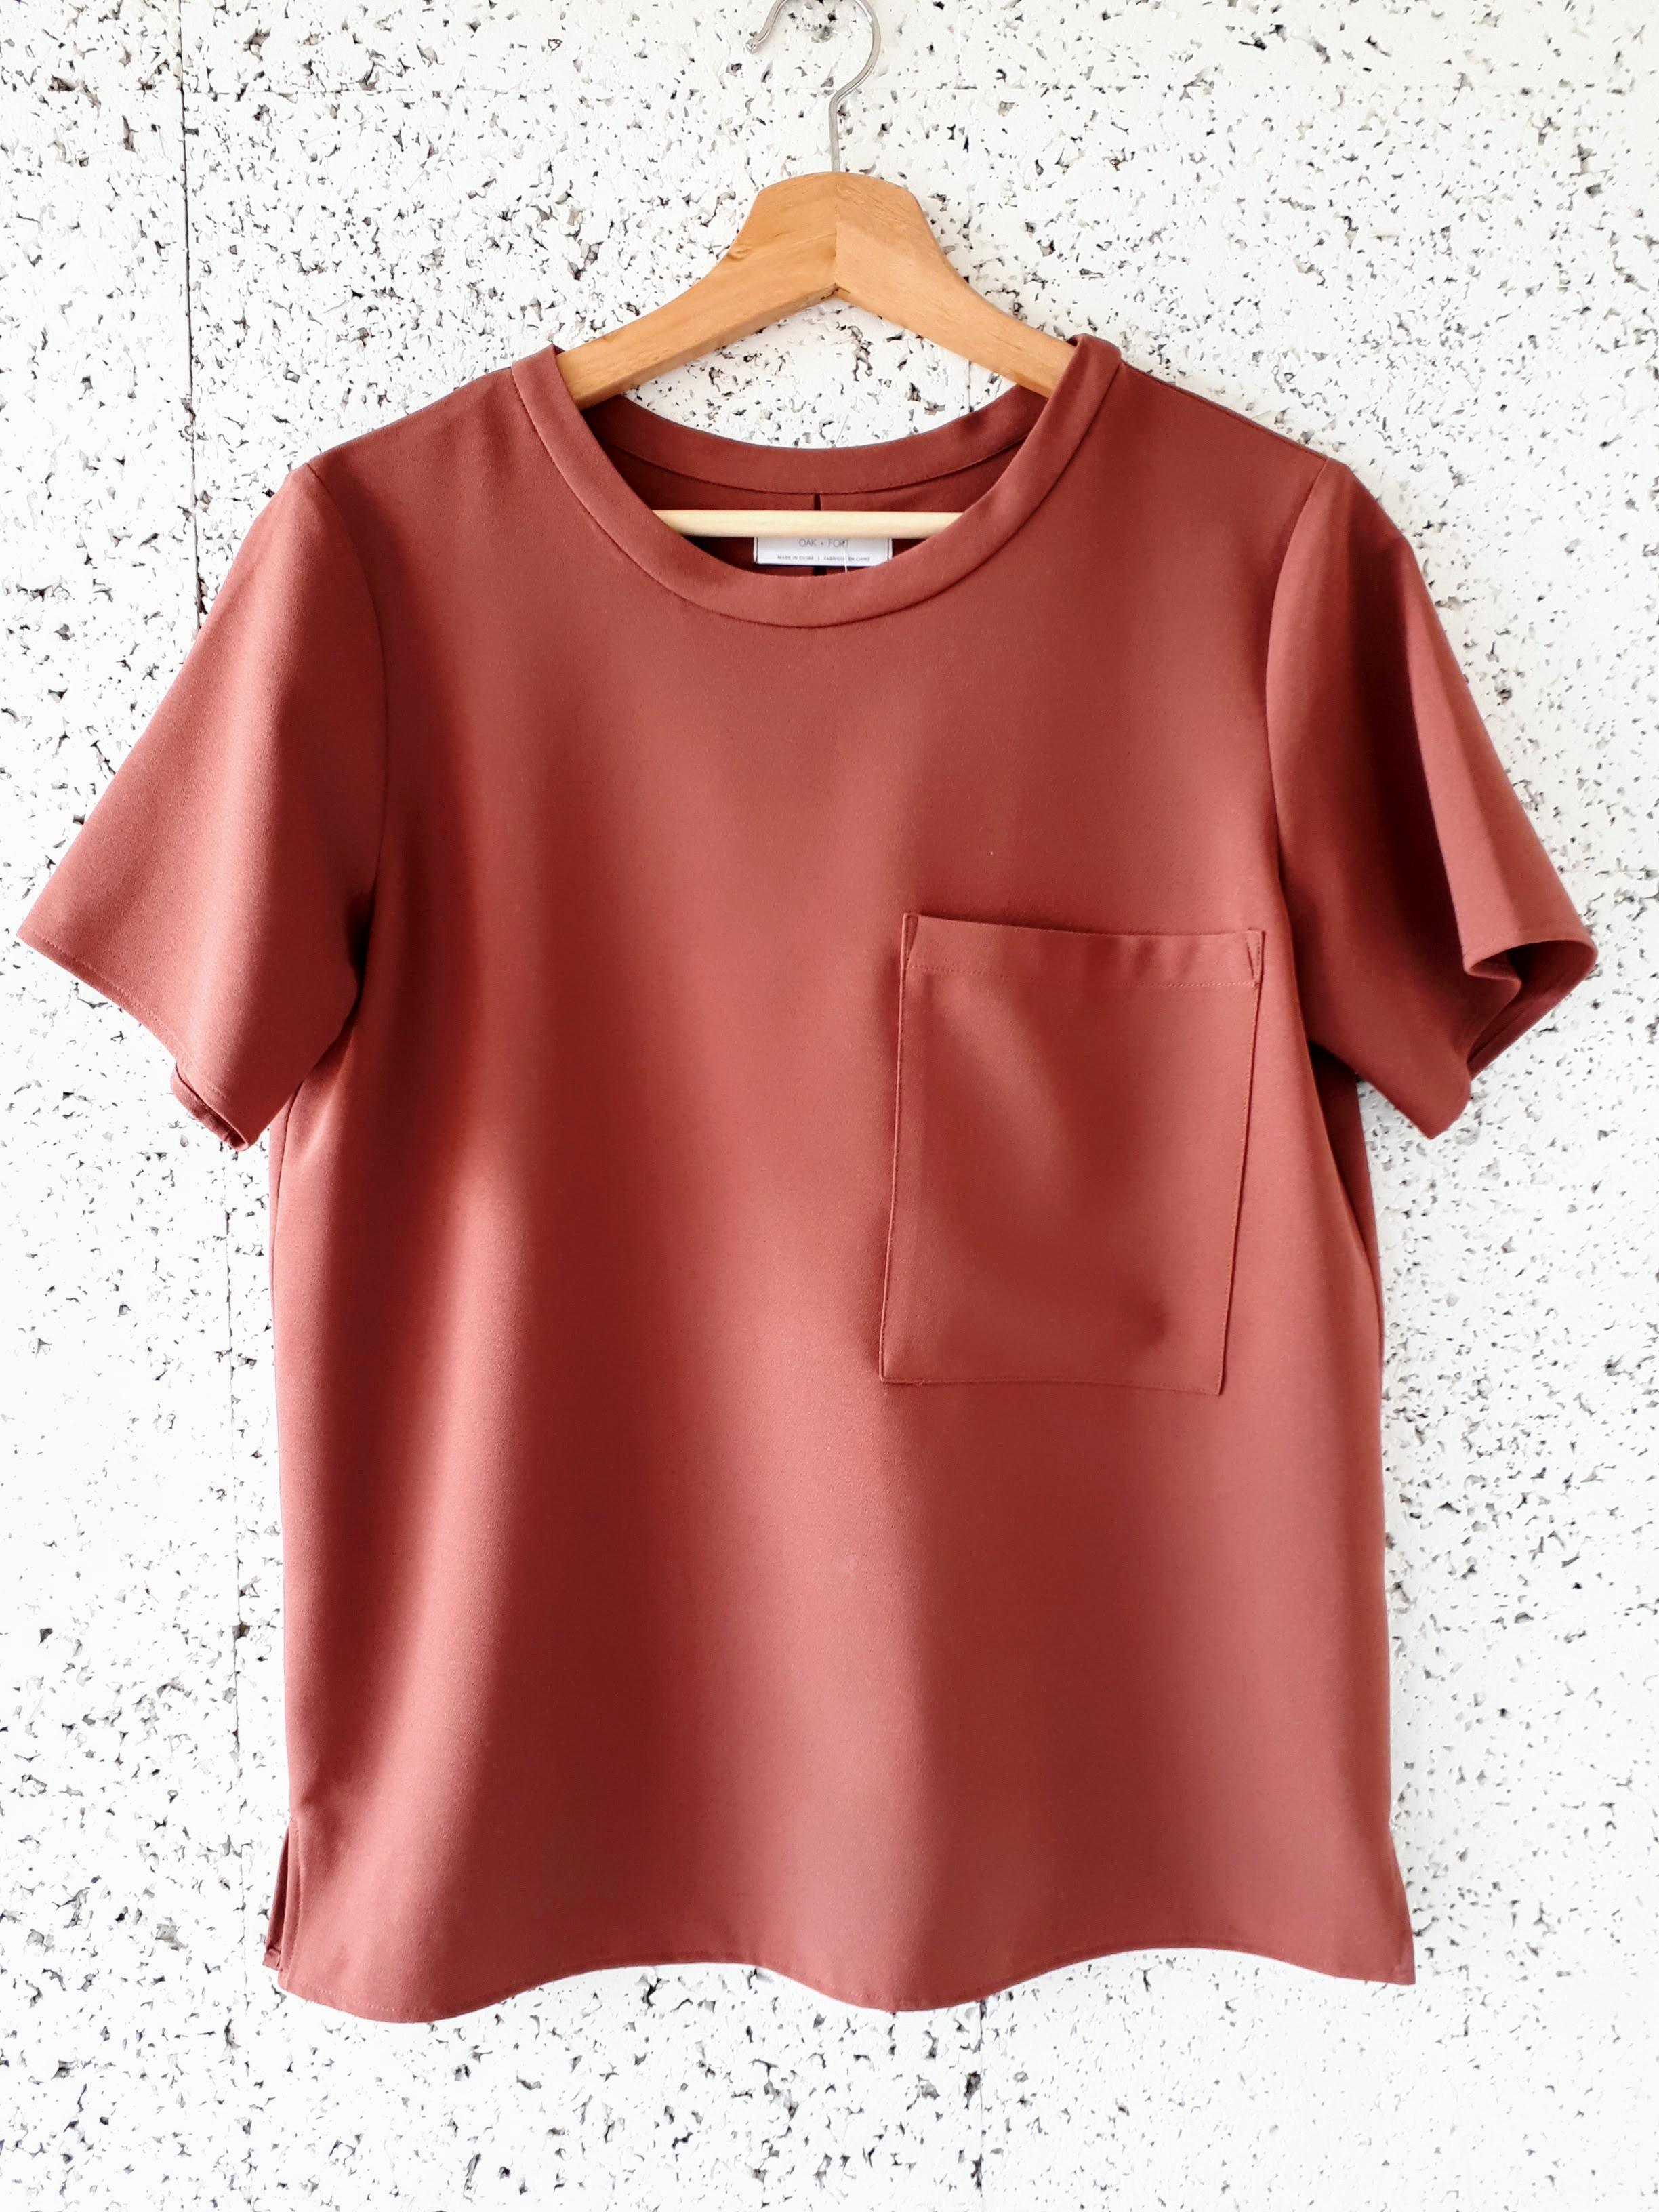 Oak and Fort top; Size S, $40